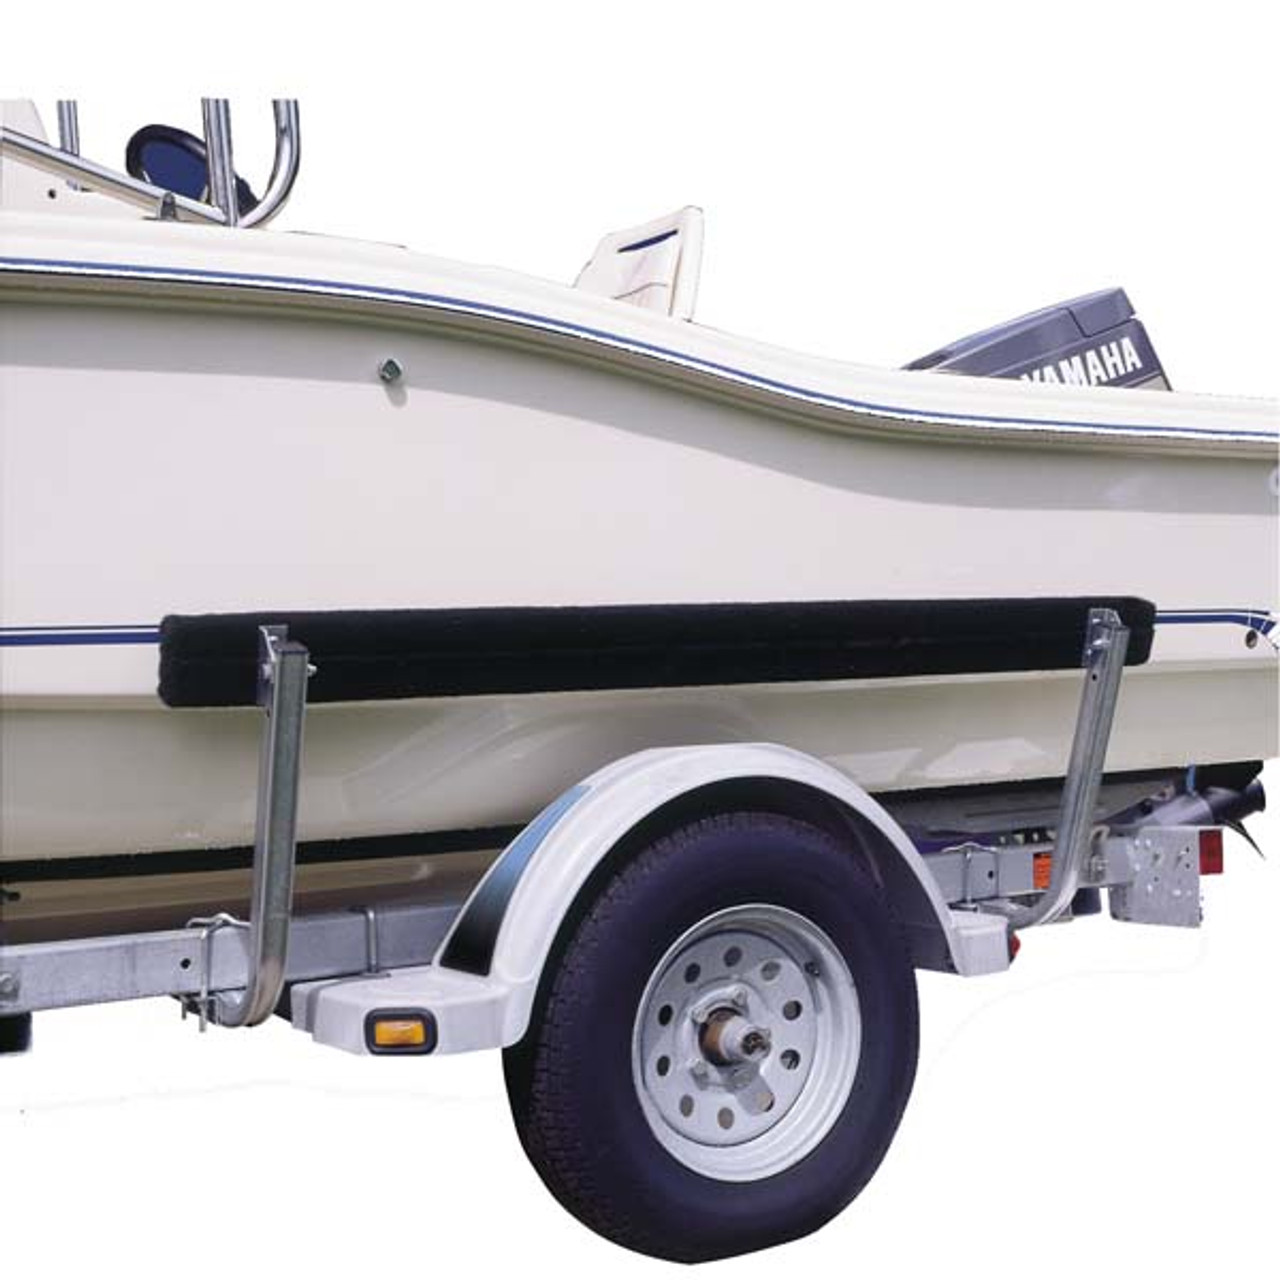 CE Smith Trailer Post Guide-On Covers -Replacement Parts and Accessories for your Ski Boat Fishing Boat or Sailboat Trailer CE Smith Company 27900 Pair